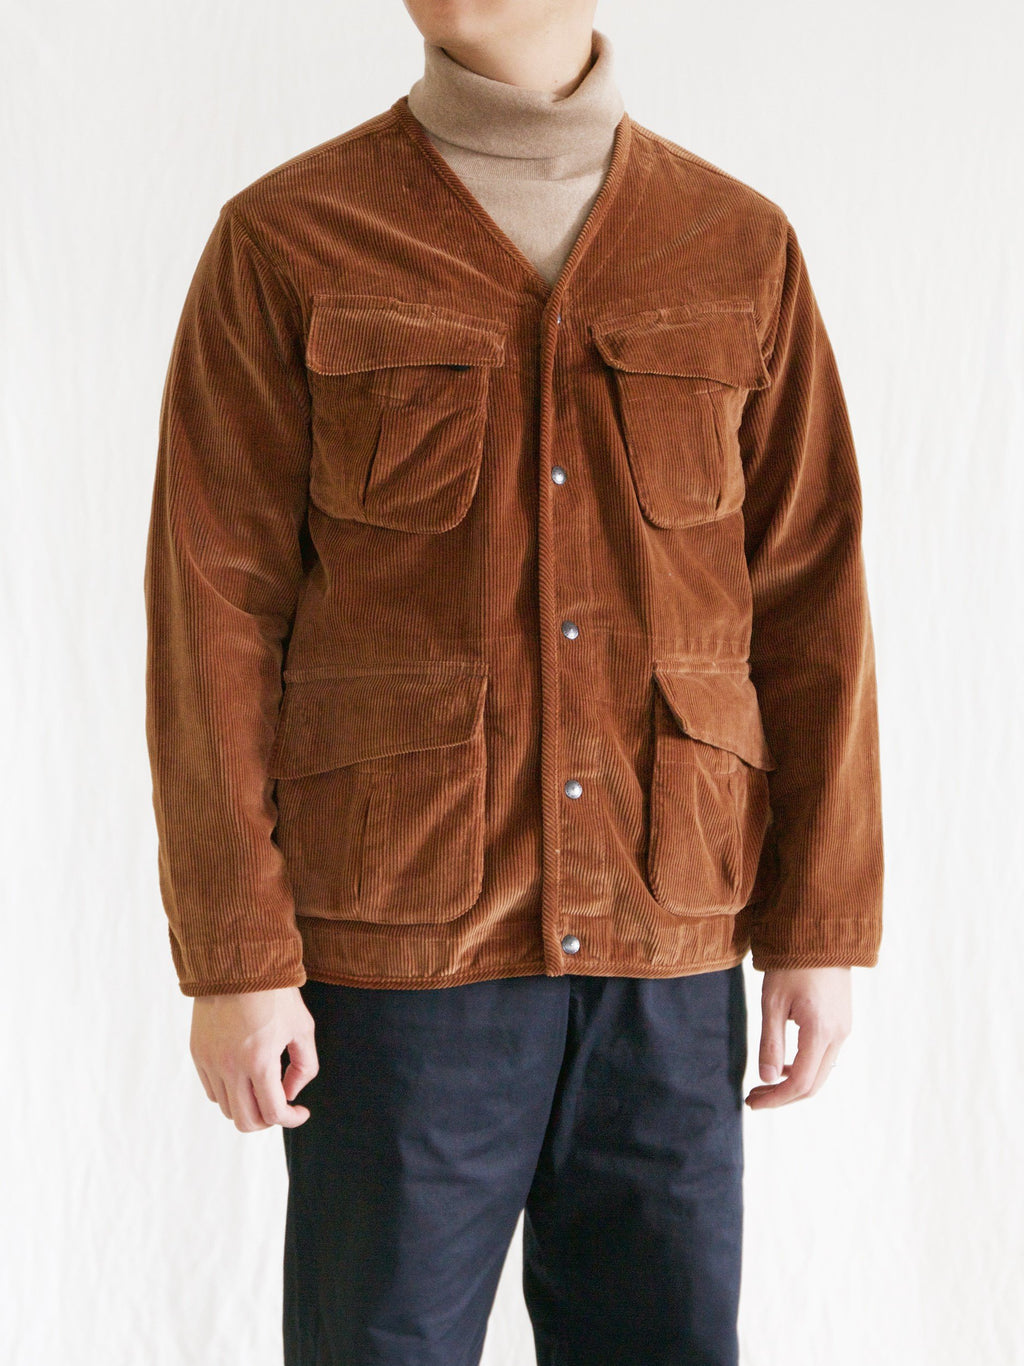 Namu Shop - Eastlogue Fatigue Jacket - Cinnamon